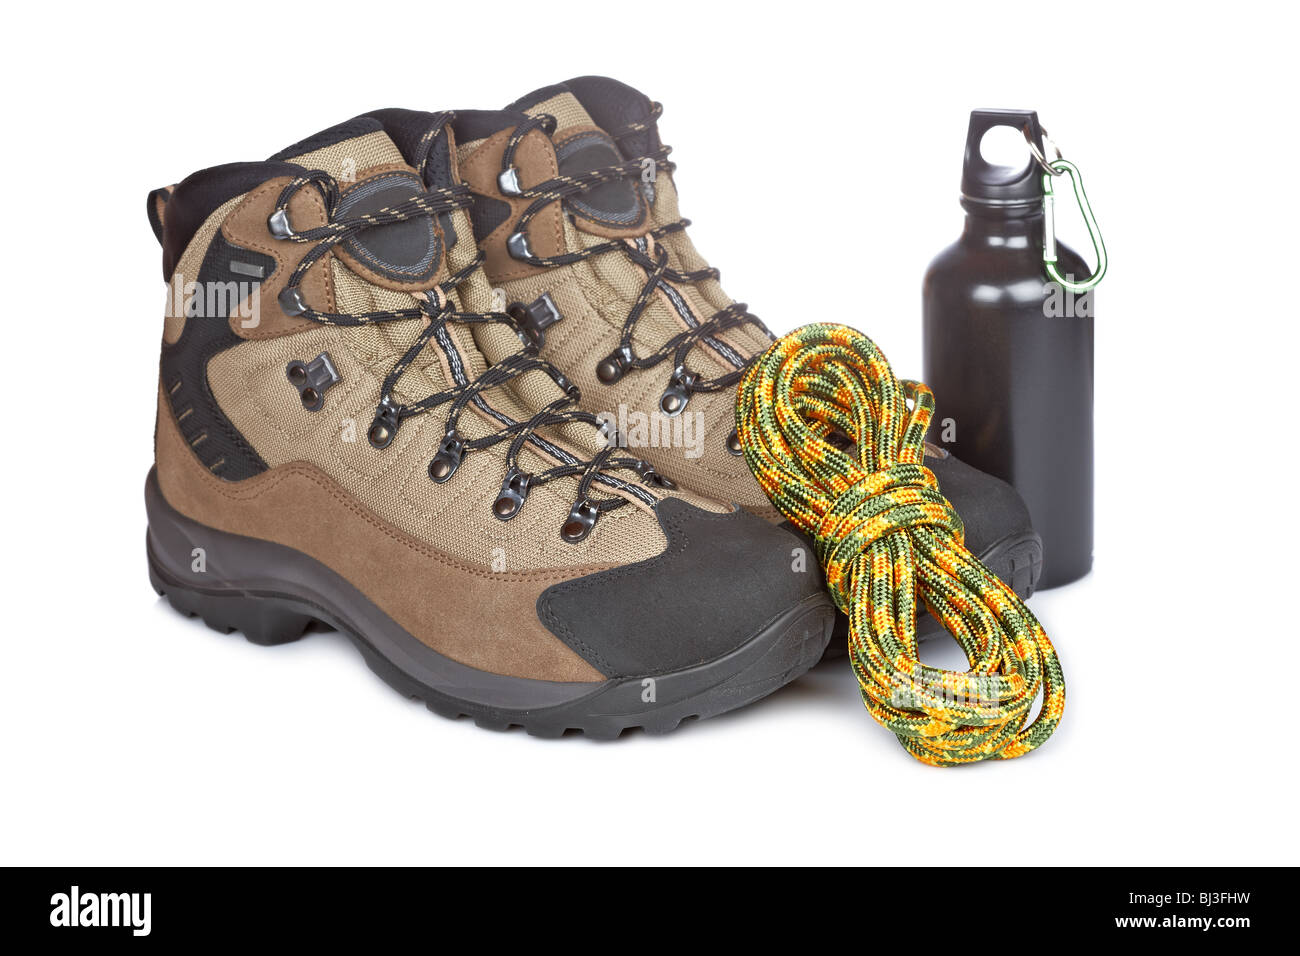 Hiking boots, canteen and rope reflected on white background. Shallow depth of field - Stock Image